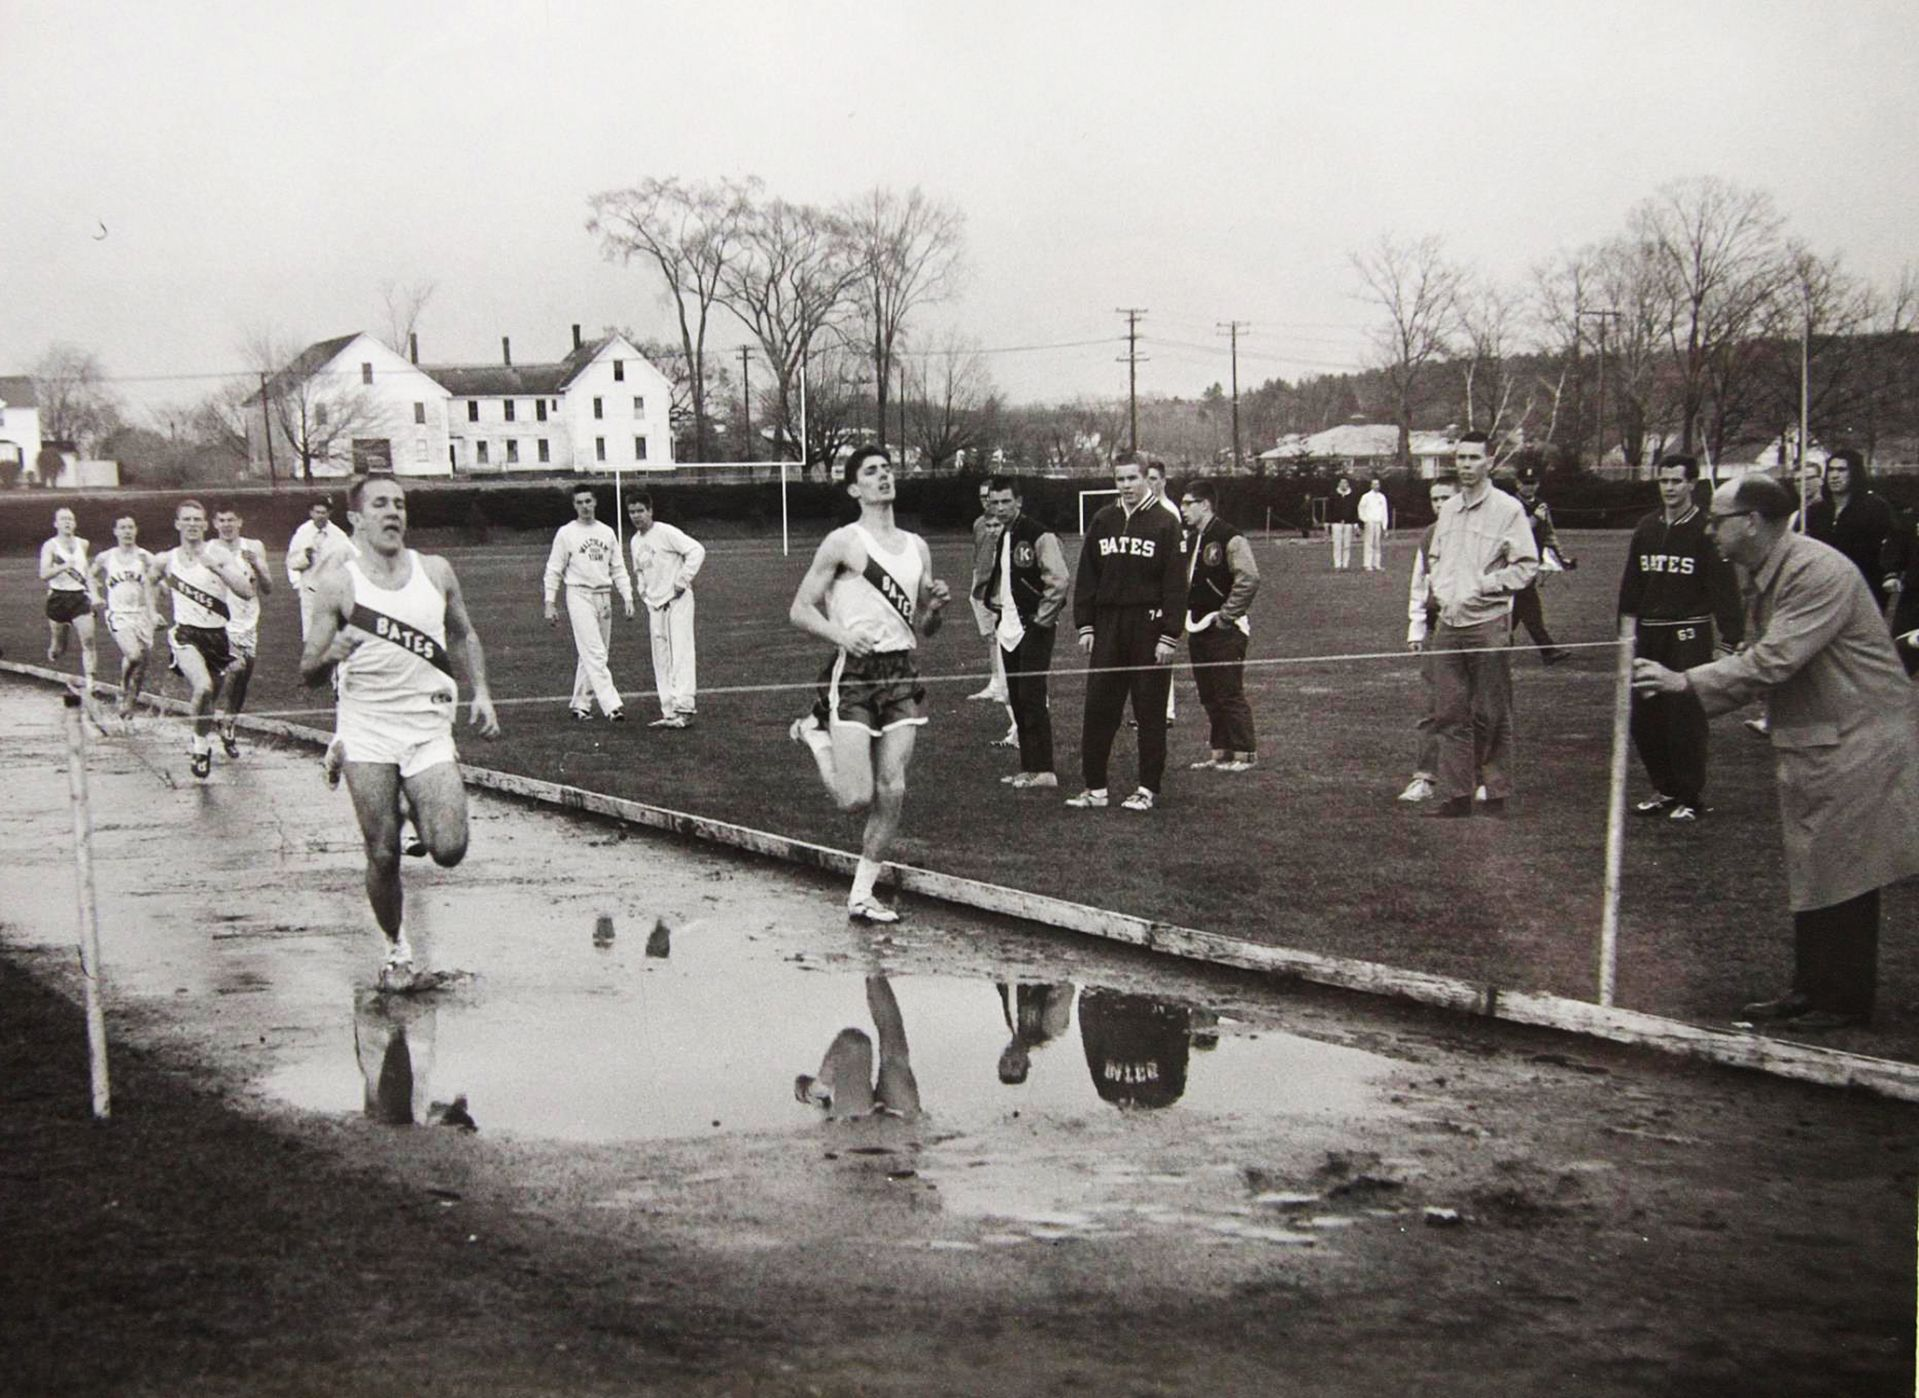 In the 1950s, the impervious clay beneath Bates helped to make Garcelon Field's old cinder track puddle-prone. (Courtesy Tom Leonard '78)